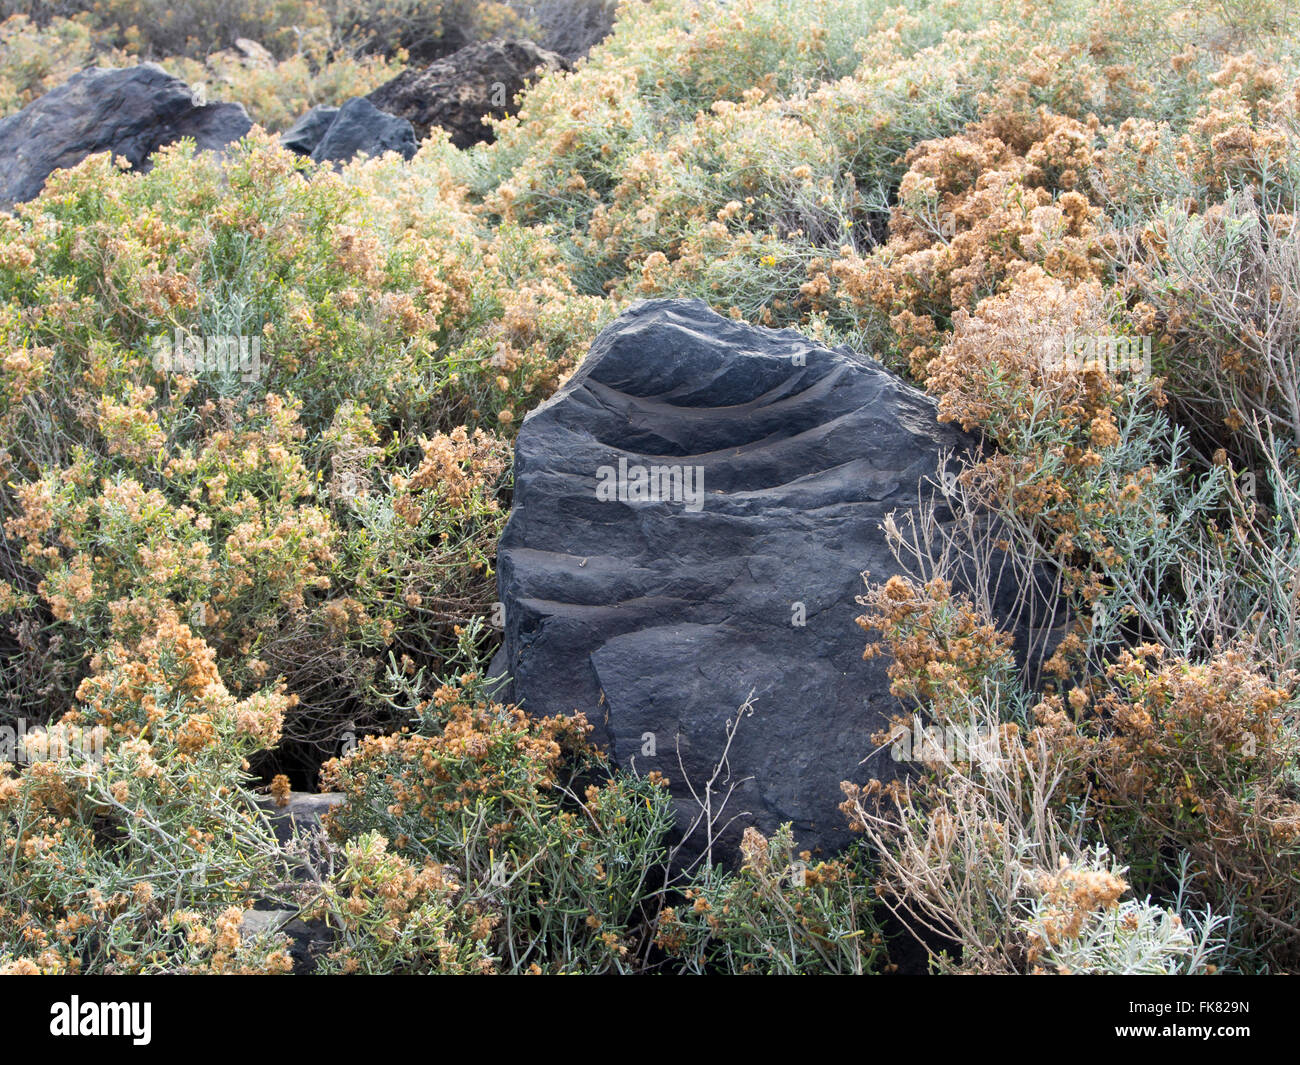 Solidified volcanic  lava stone with pleasing curves in a field of withered flowering plants, coastal scene from - Stock Image